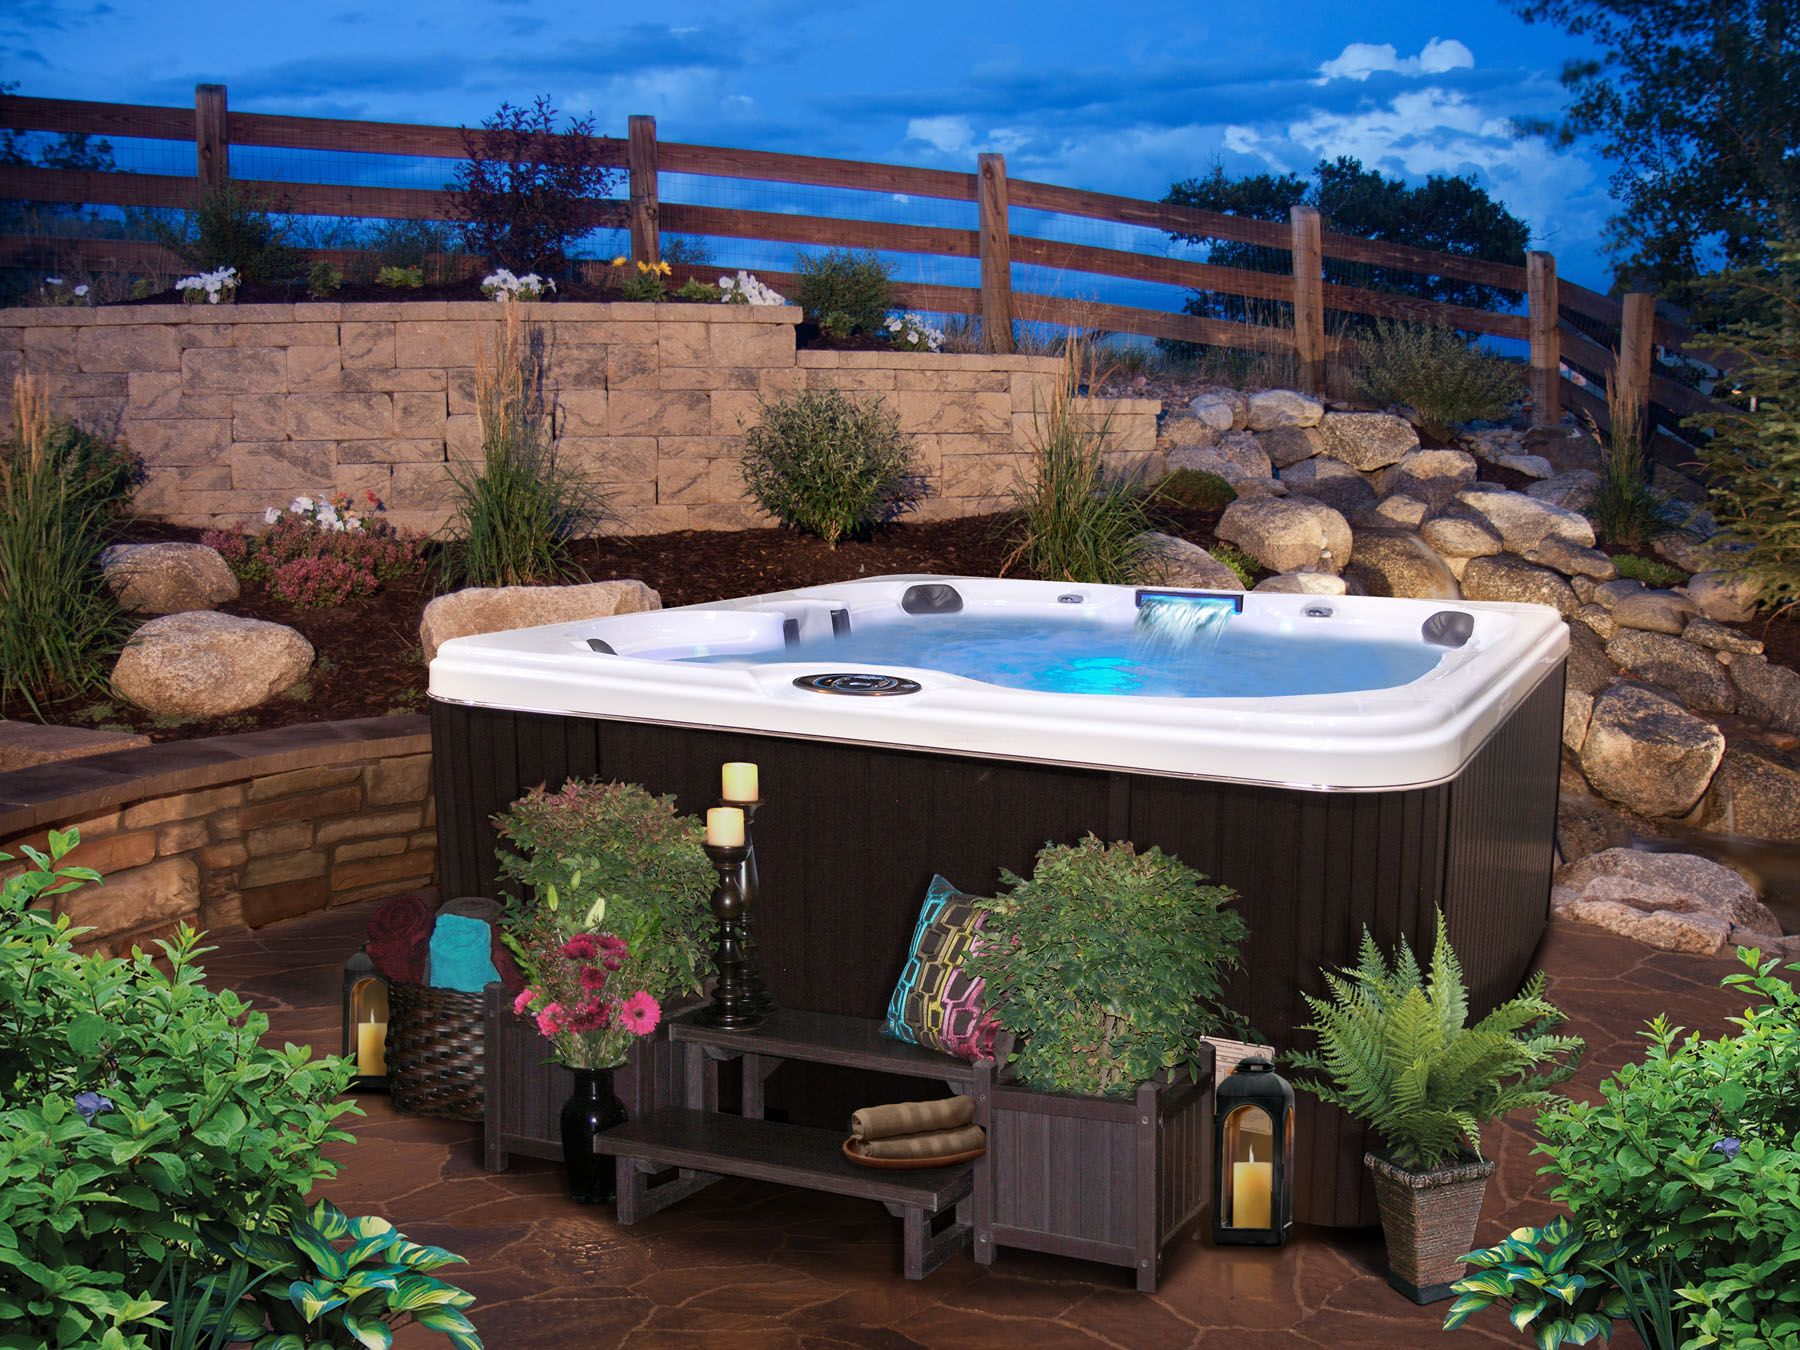 Backyard Landscaping Hot Tub : Hot tub landscaping for the beginner on a budget